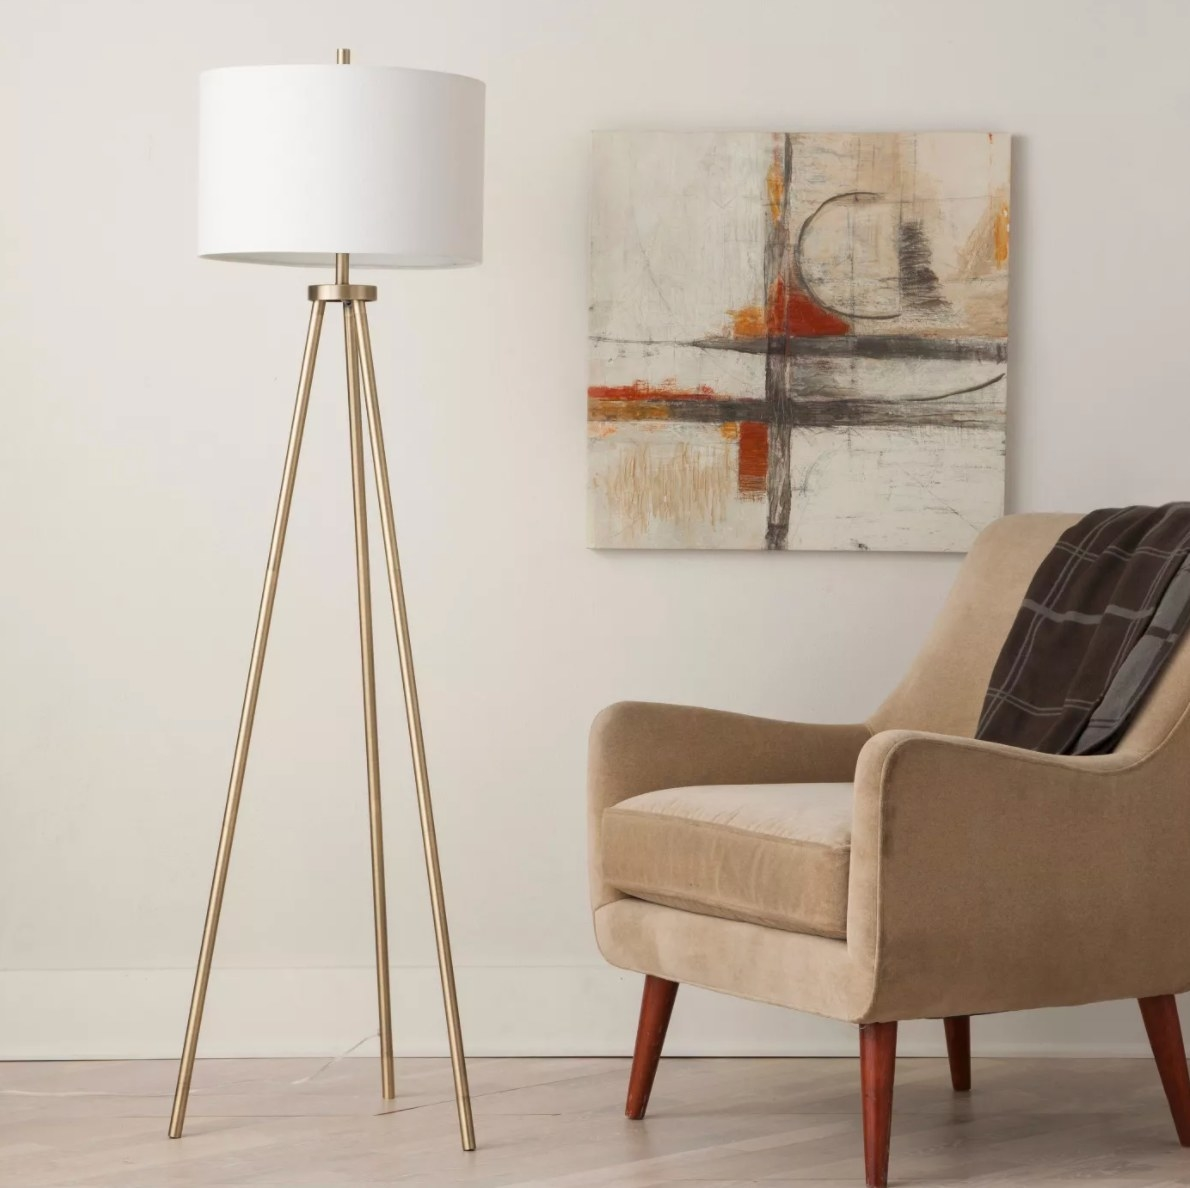 The tripod floor lamp with a white shade and brass legs